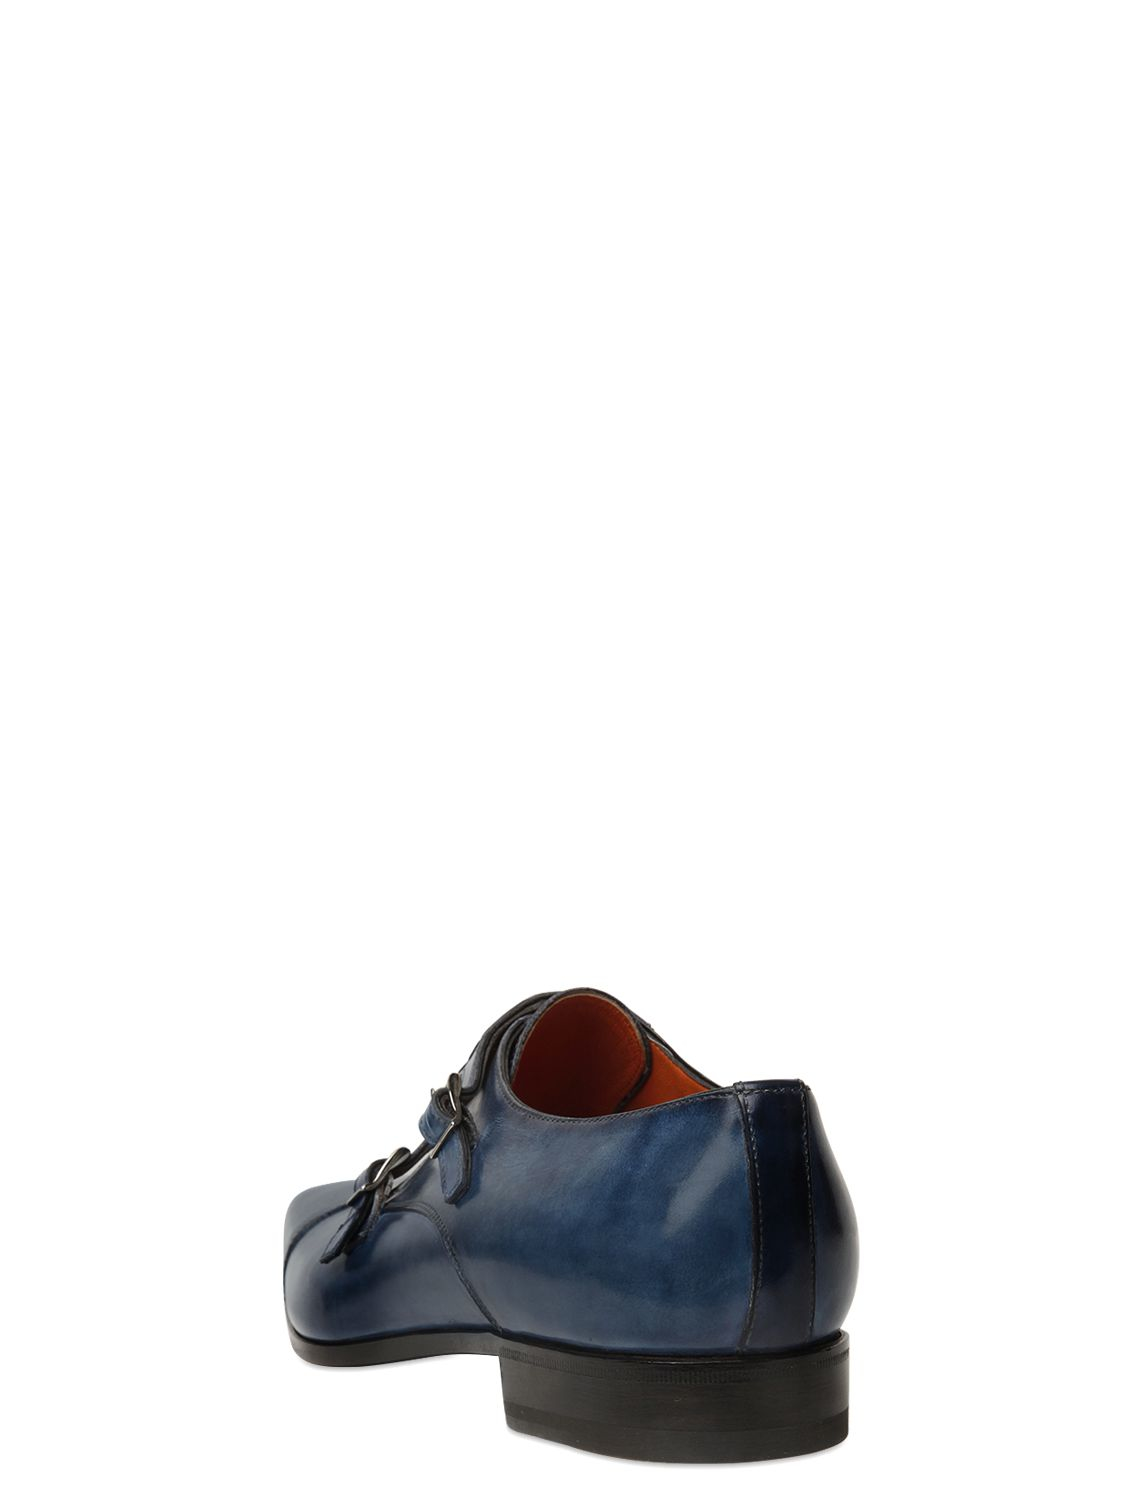 New Oxford Men Shoes With Double Leather Sole